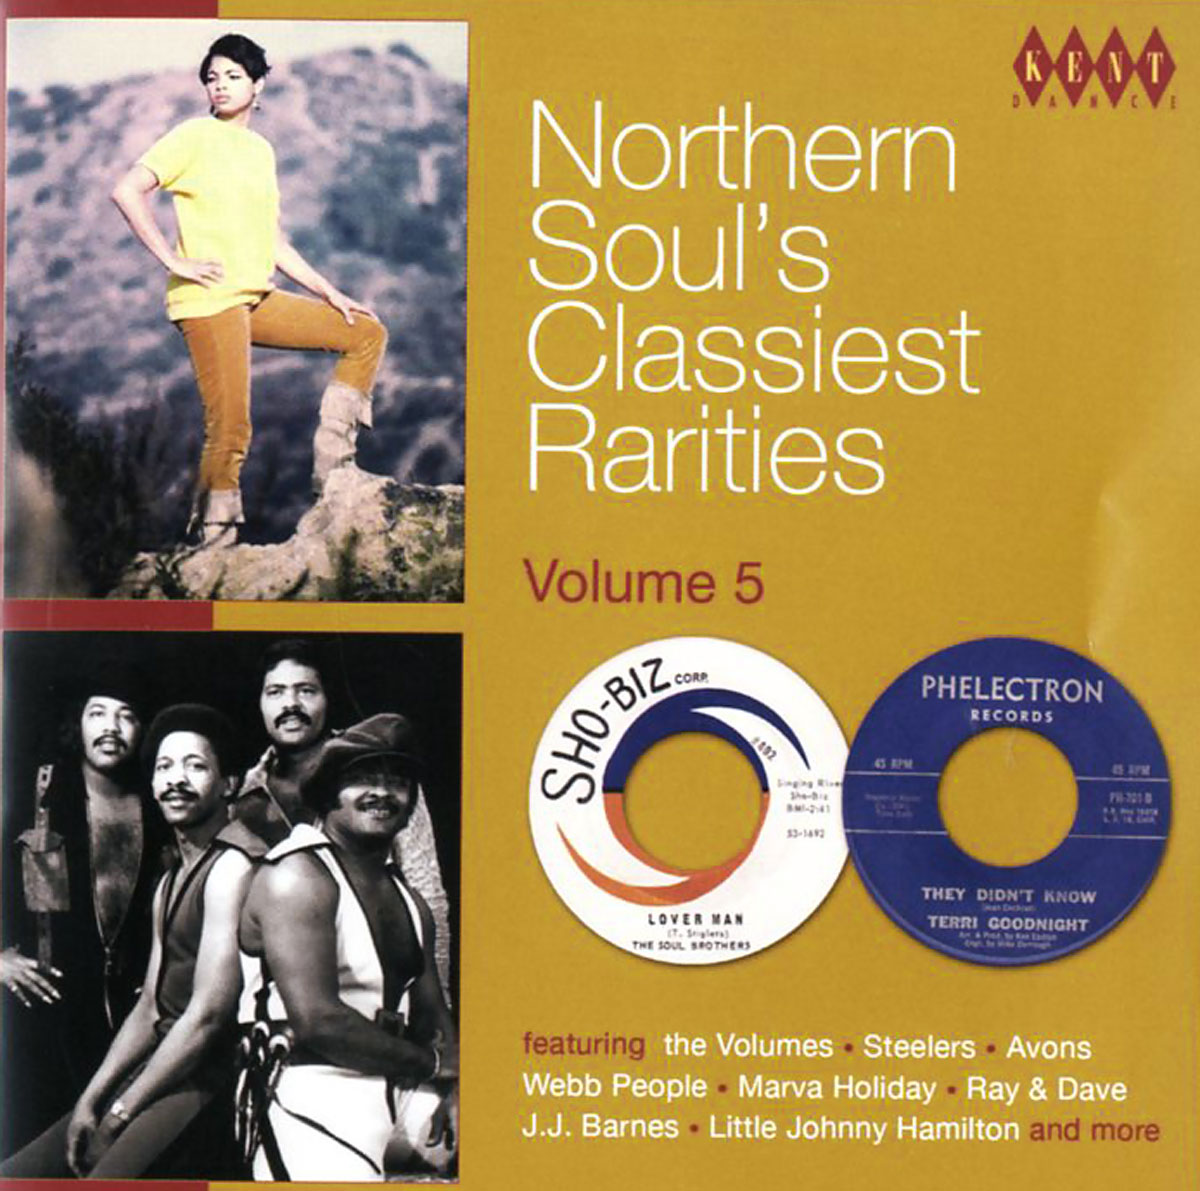 The Volumes,Marva Holiday,The Steelers,Клиффорд Карри,Mouse,The Traps,J. J. Barnes,The Soul Brothers,Мел Дэвис,Дэвид Пиплс Northern Soul's Classiest Rarities. Volume 5 northern lights the graphic novel volume 1